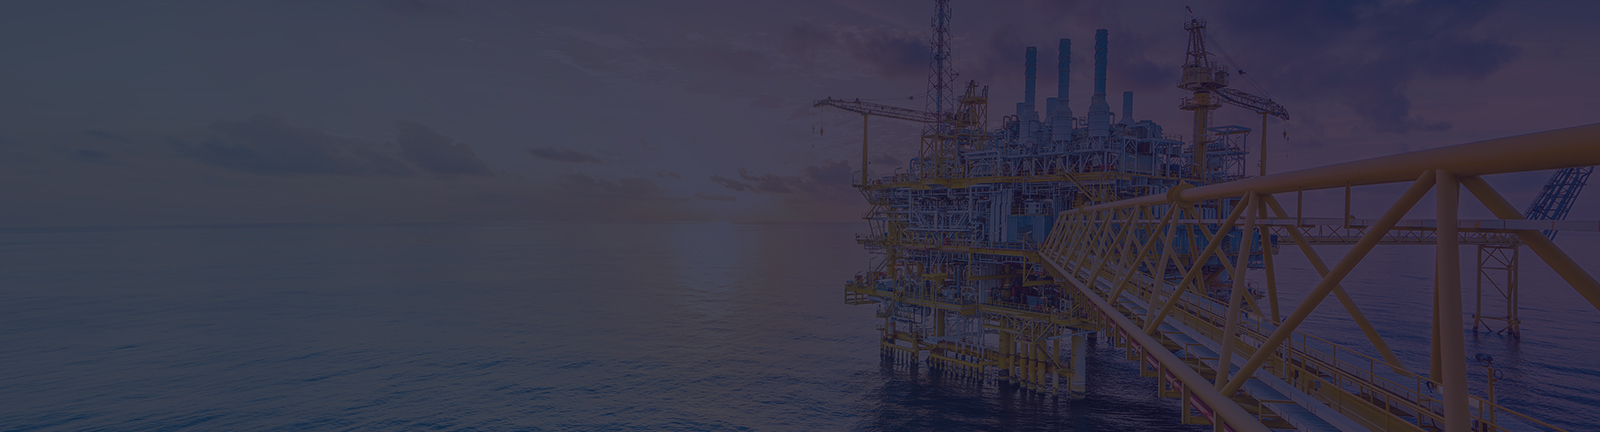 North American midstream oil and gas sector: Holding its ground firmly despite macro energy headwinds